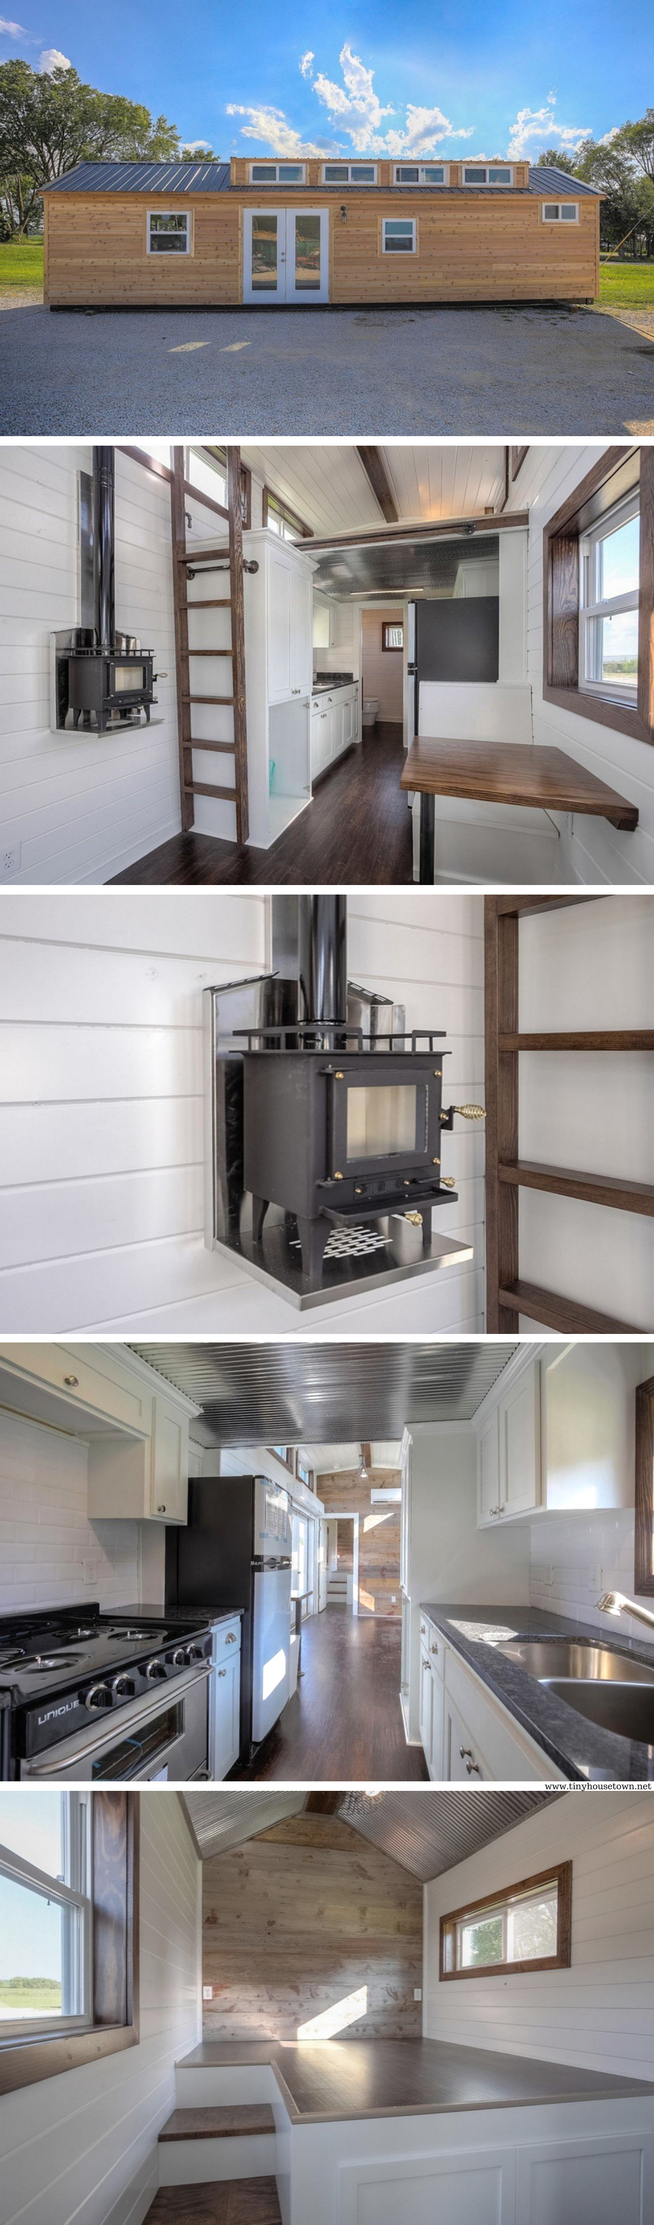 a 380 sq ft cabin made from a repurposed shipping container. the